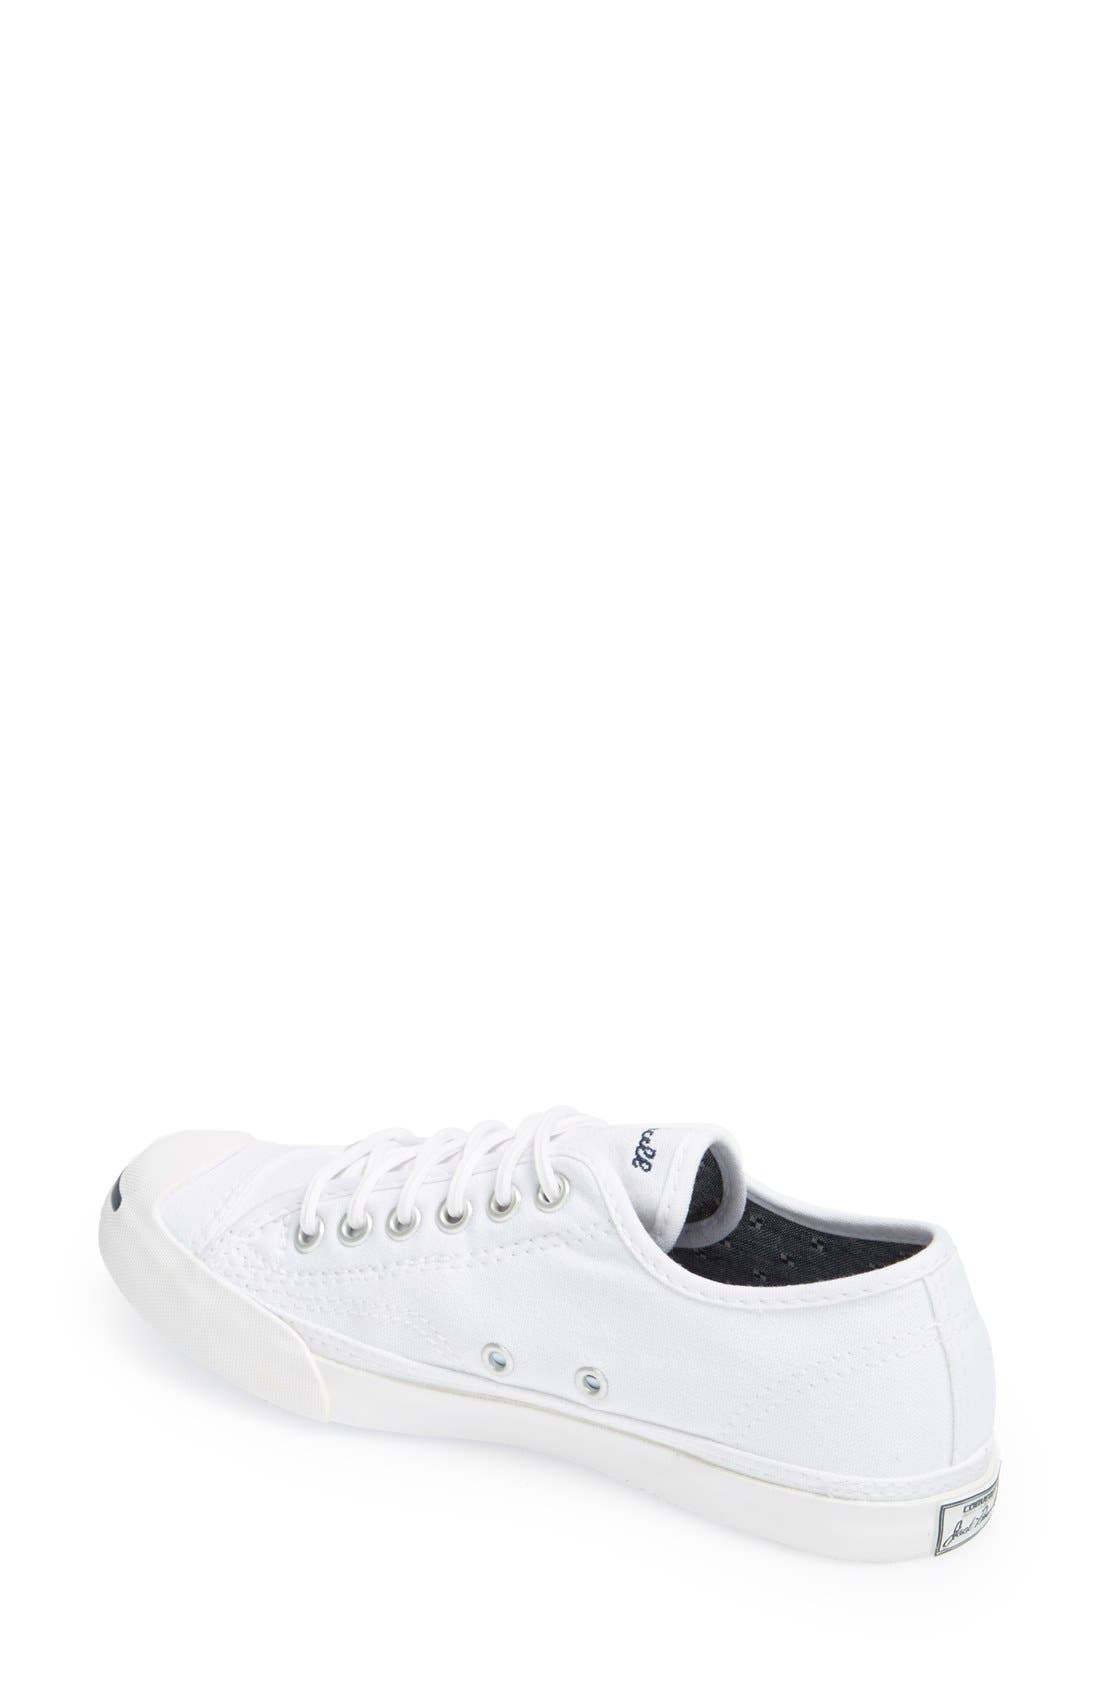 Alternate Image 3  - Converse 'Jack Purcell - LP' Low Top Sneaker (Women)